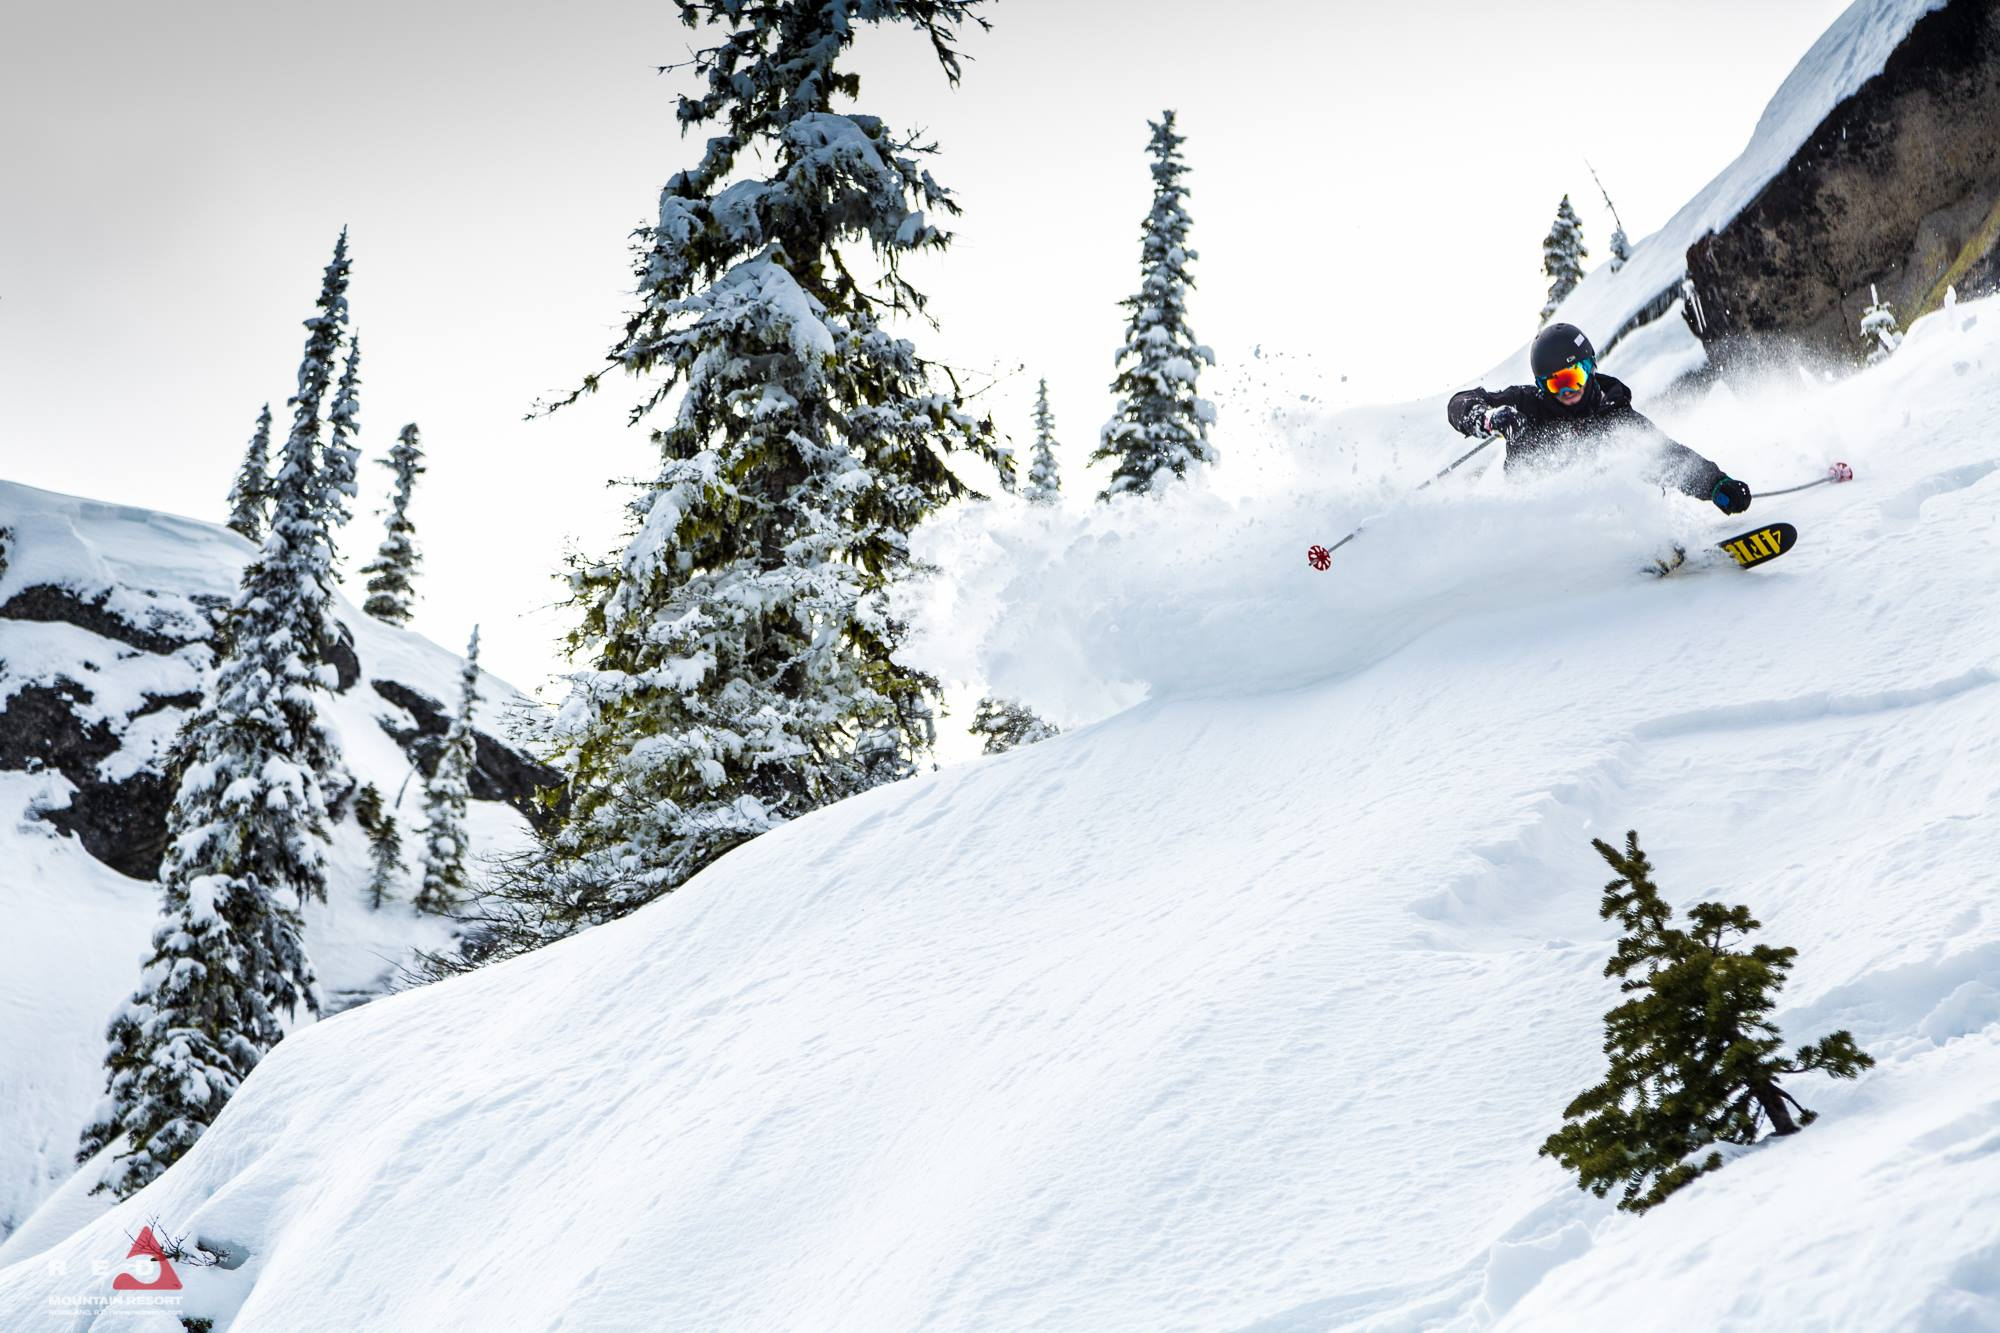 What price would you put on a powder slash?